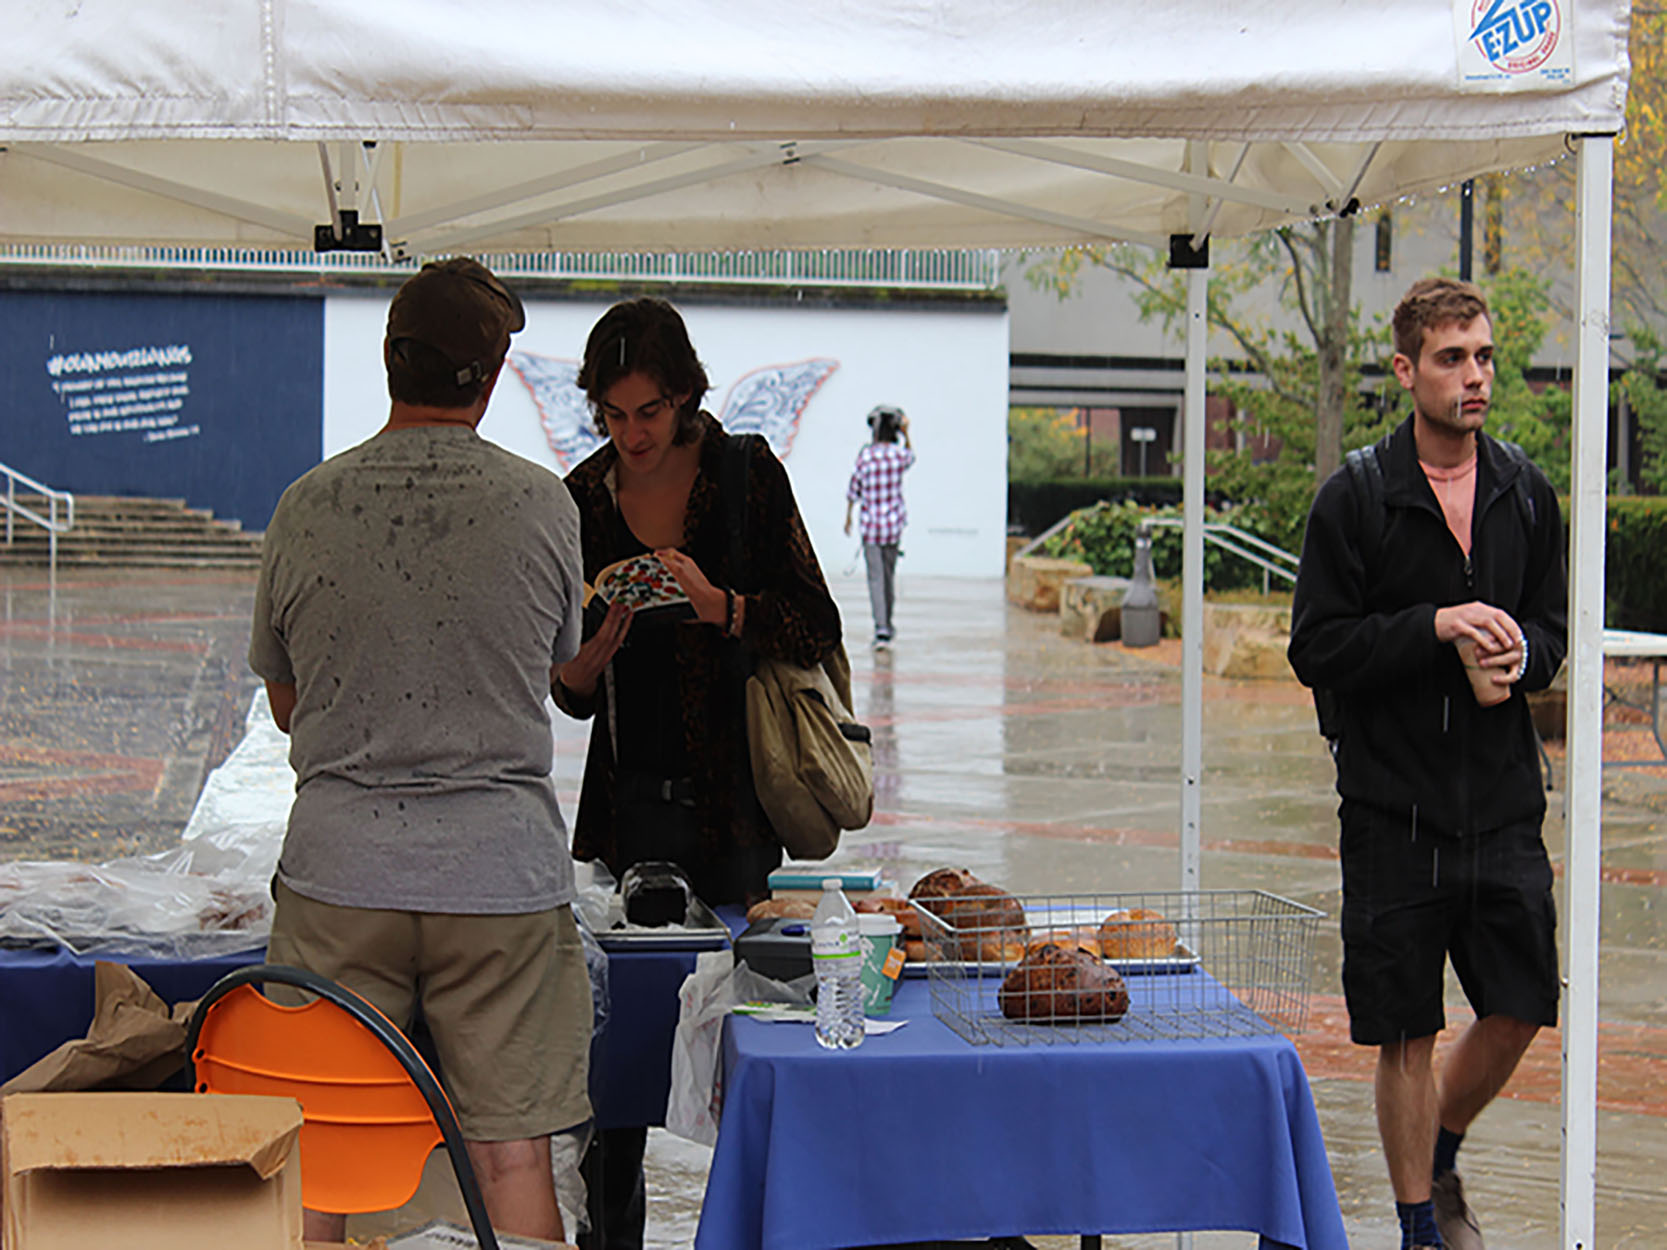 SUNY New Paltz's Farmers Market Returns to Campus